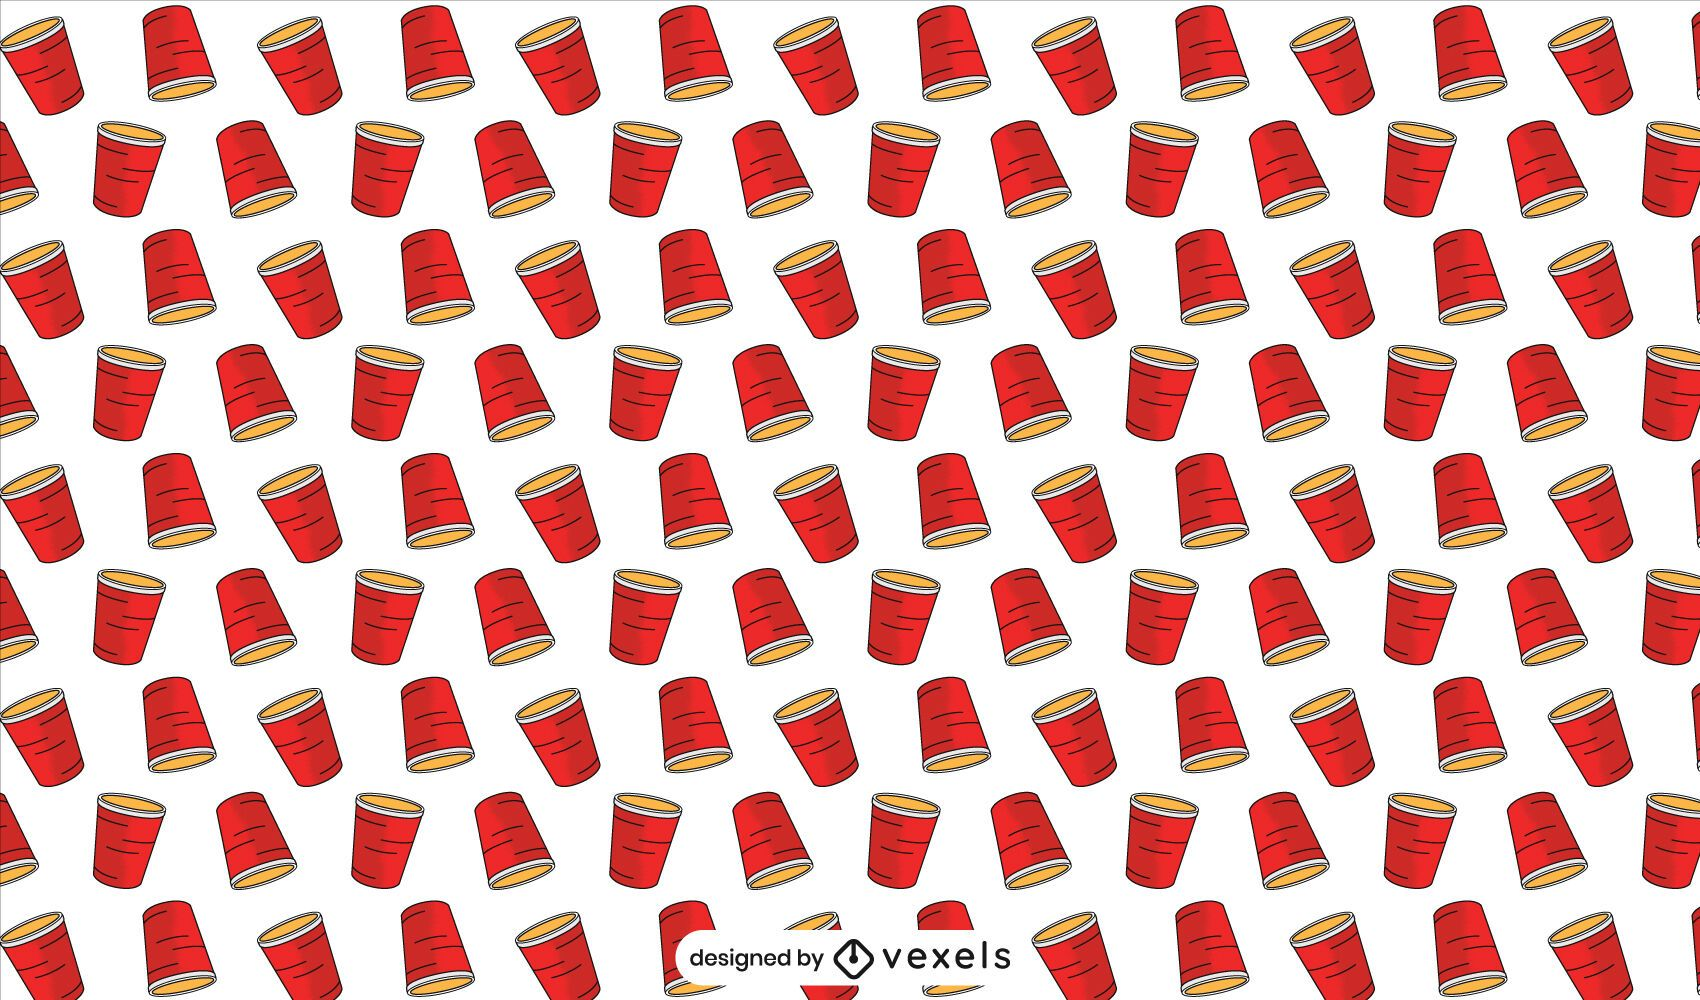 Red cups pattern design